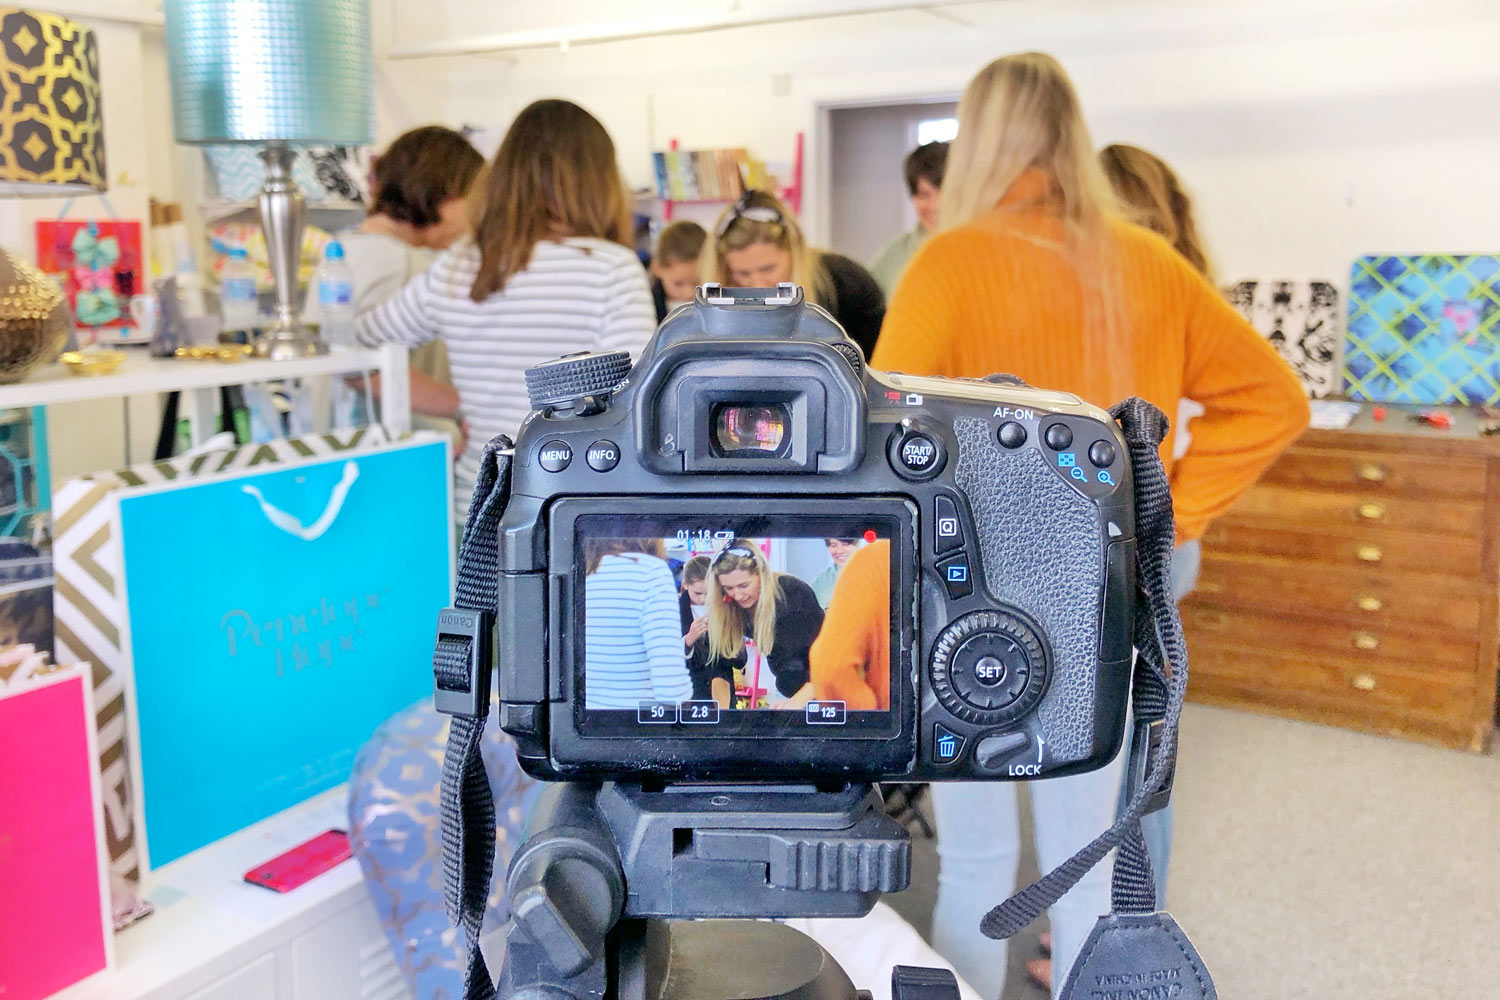 """Video is now known in the social media world being the """"King of Content"""" - and rightly so! - Video is so much more engaging than reading blocks of text, and even captures your customers' attention more than a still image.Video content truly brings your business to life and engages your online audience in a way that text and graphics simply don't.Showcase your business in action, give your customers and followers your expert advice, and stand out from the crowd with high quality, fun video content that will transform your website and social media pages."""